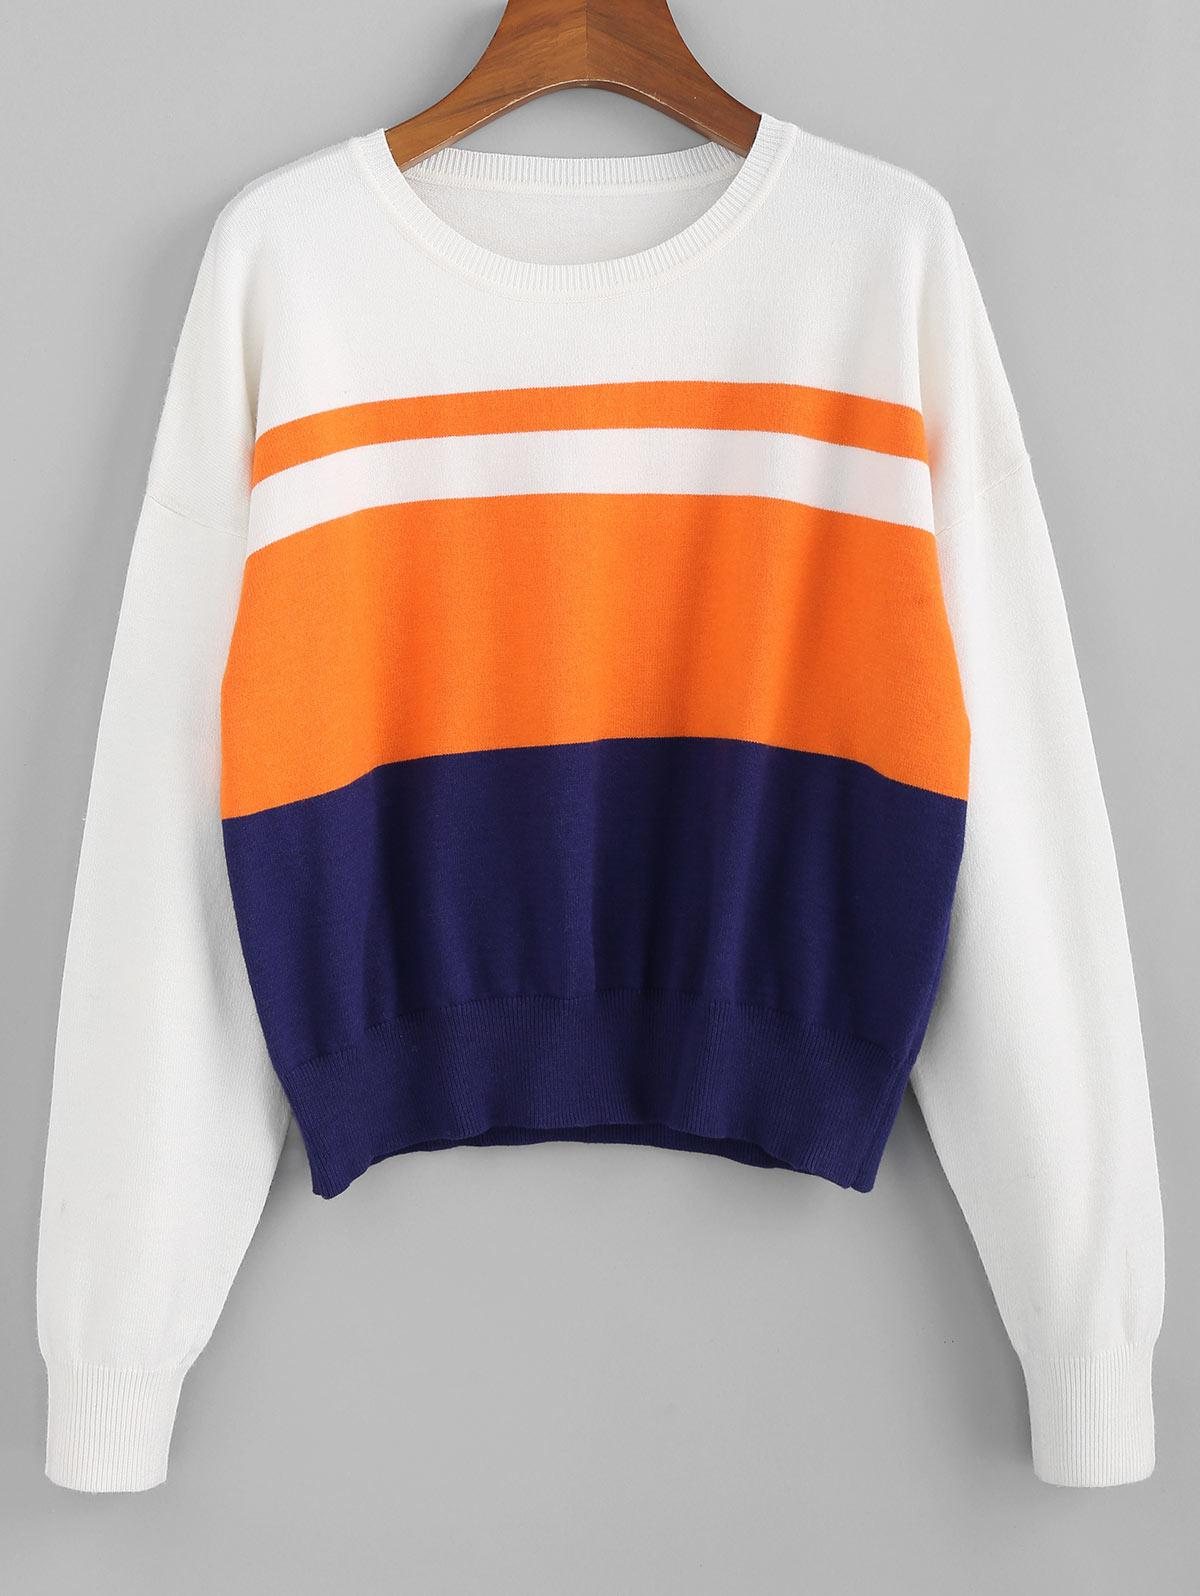 ZAFUL Drop Shoulder Colorblock Jumper Sweater